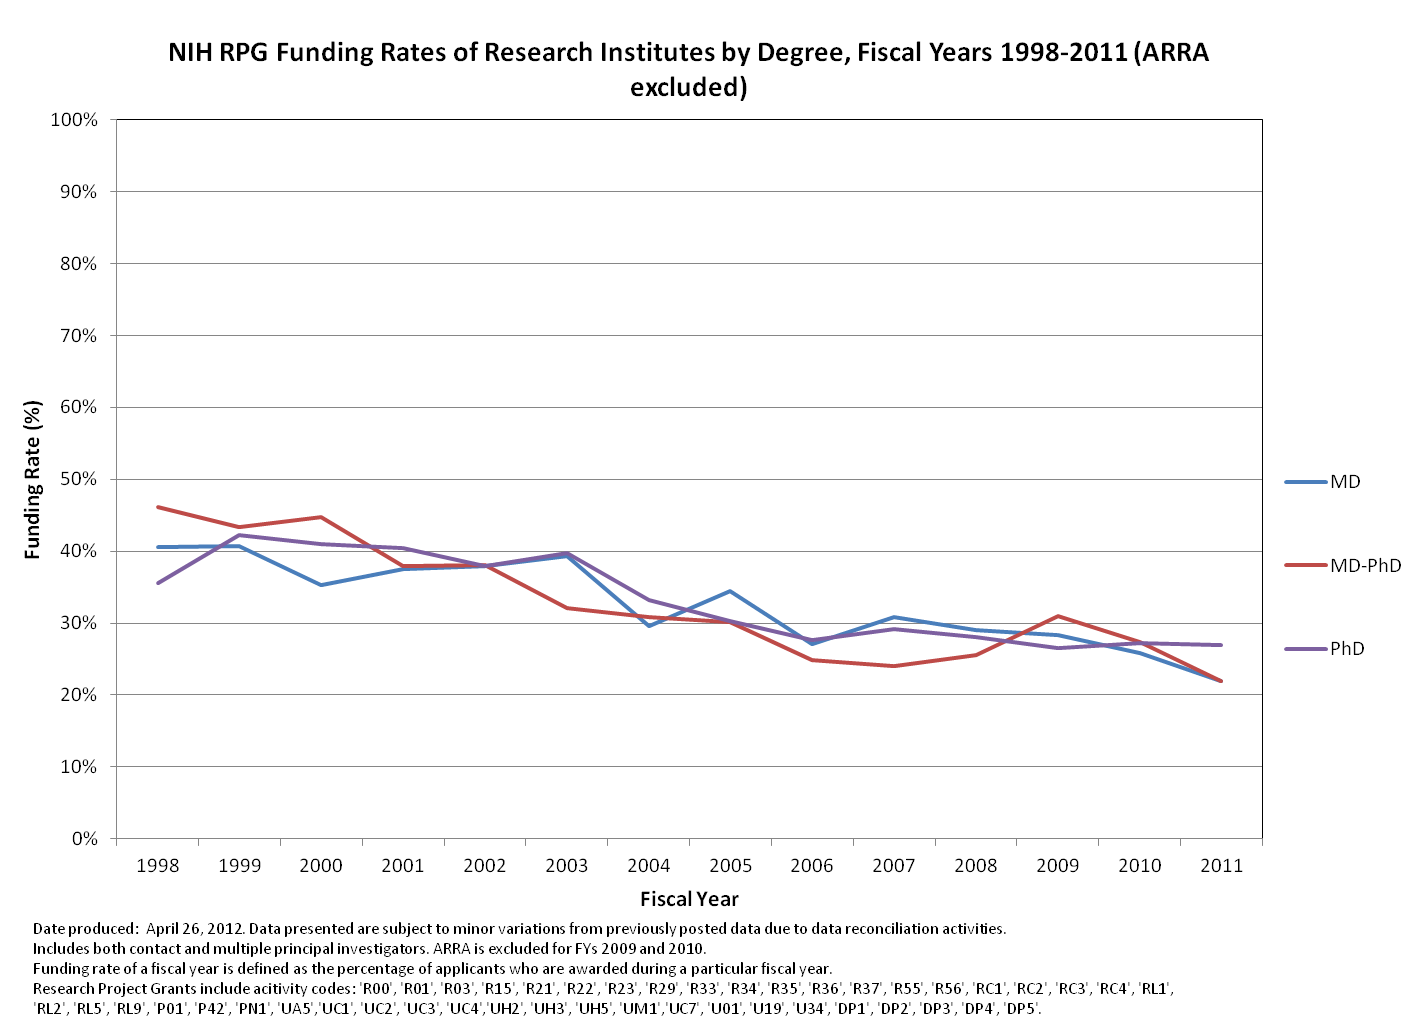 RPG funding rates 1988-2011 for research institutes